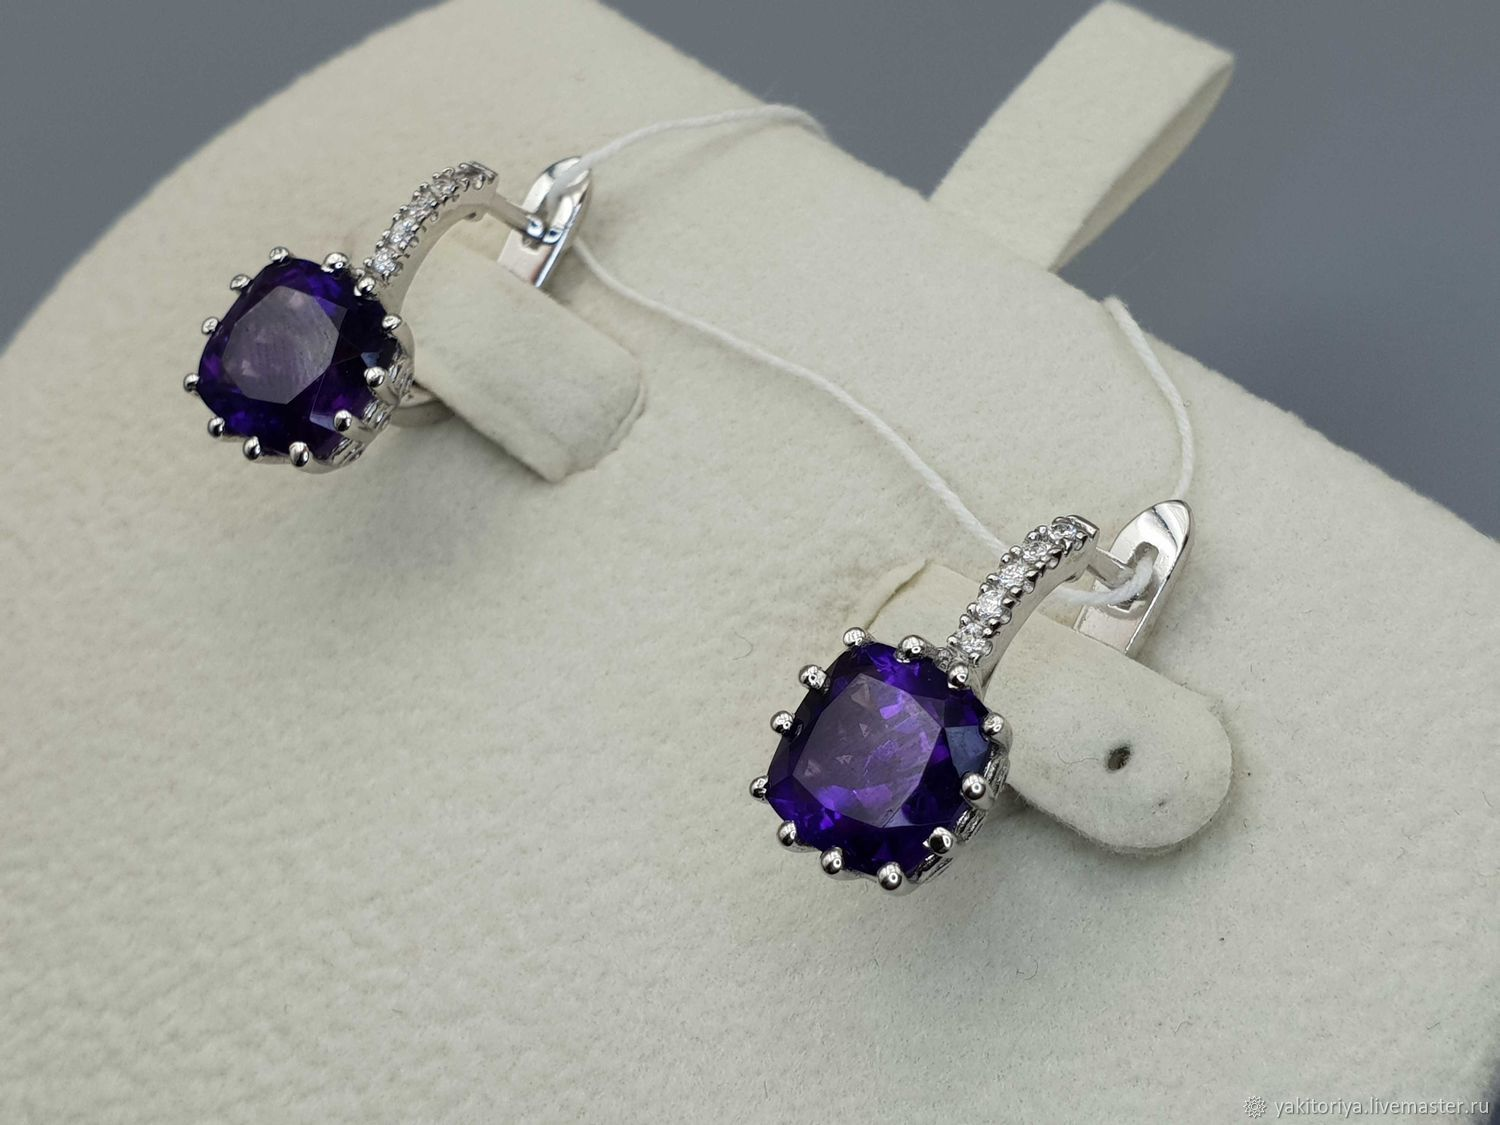 Silver earrings with amethysts and cubic zirconia, Earrings, Moscow,  Фото №1